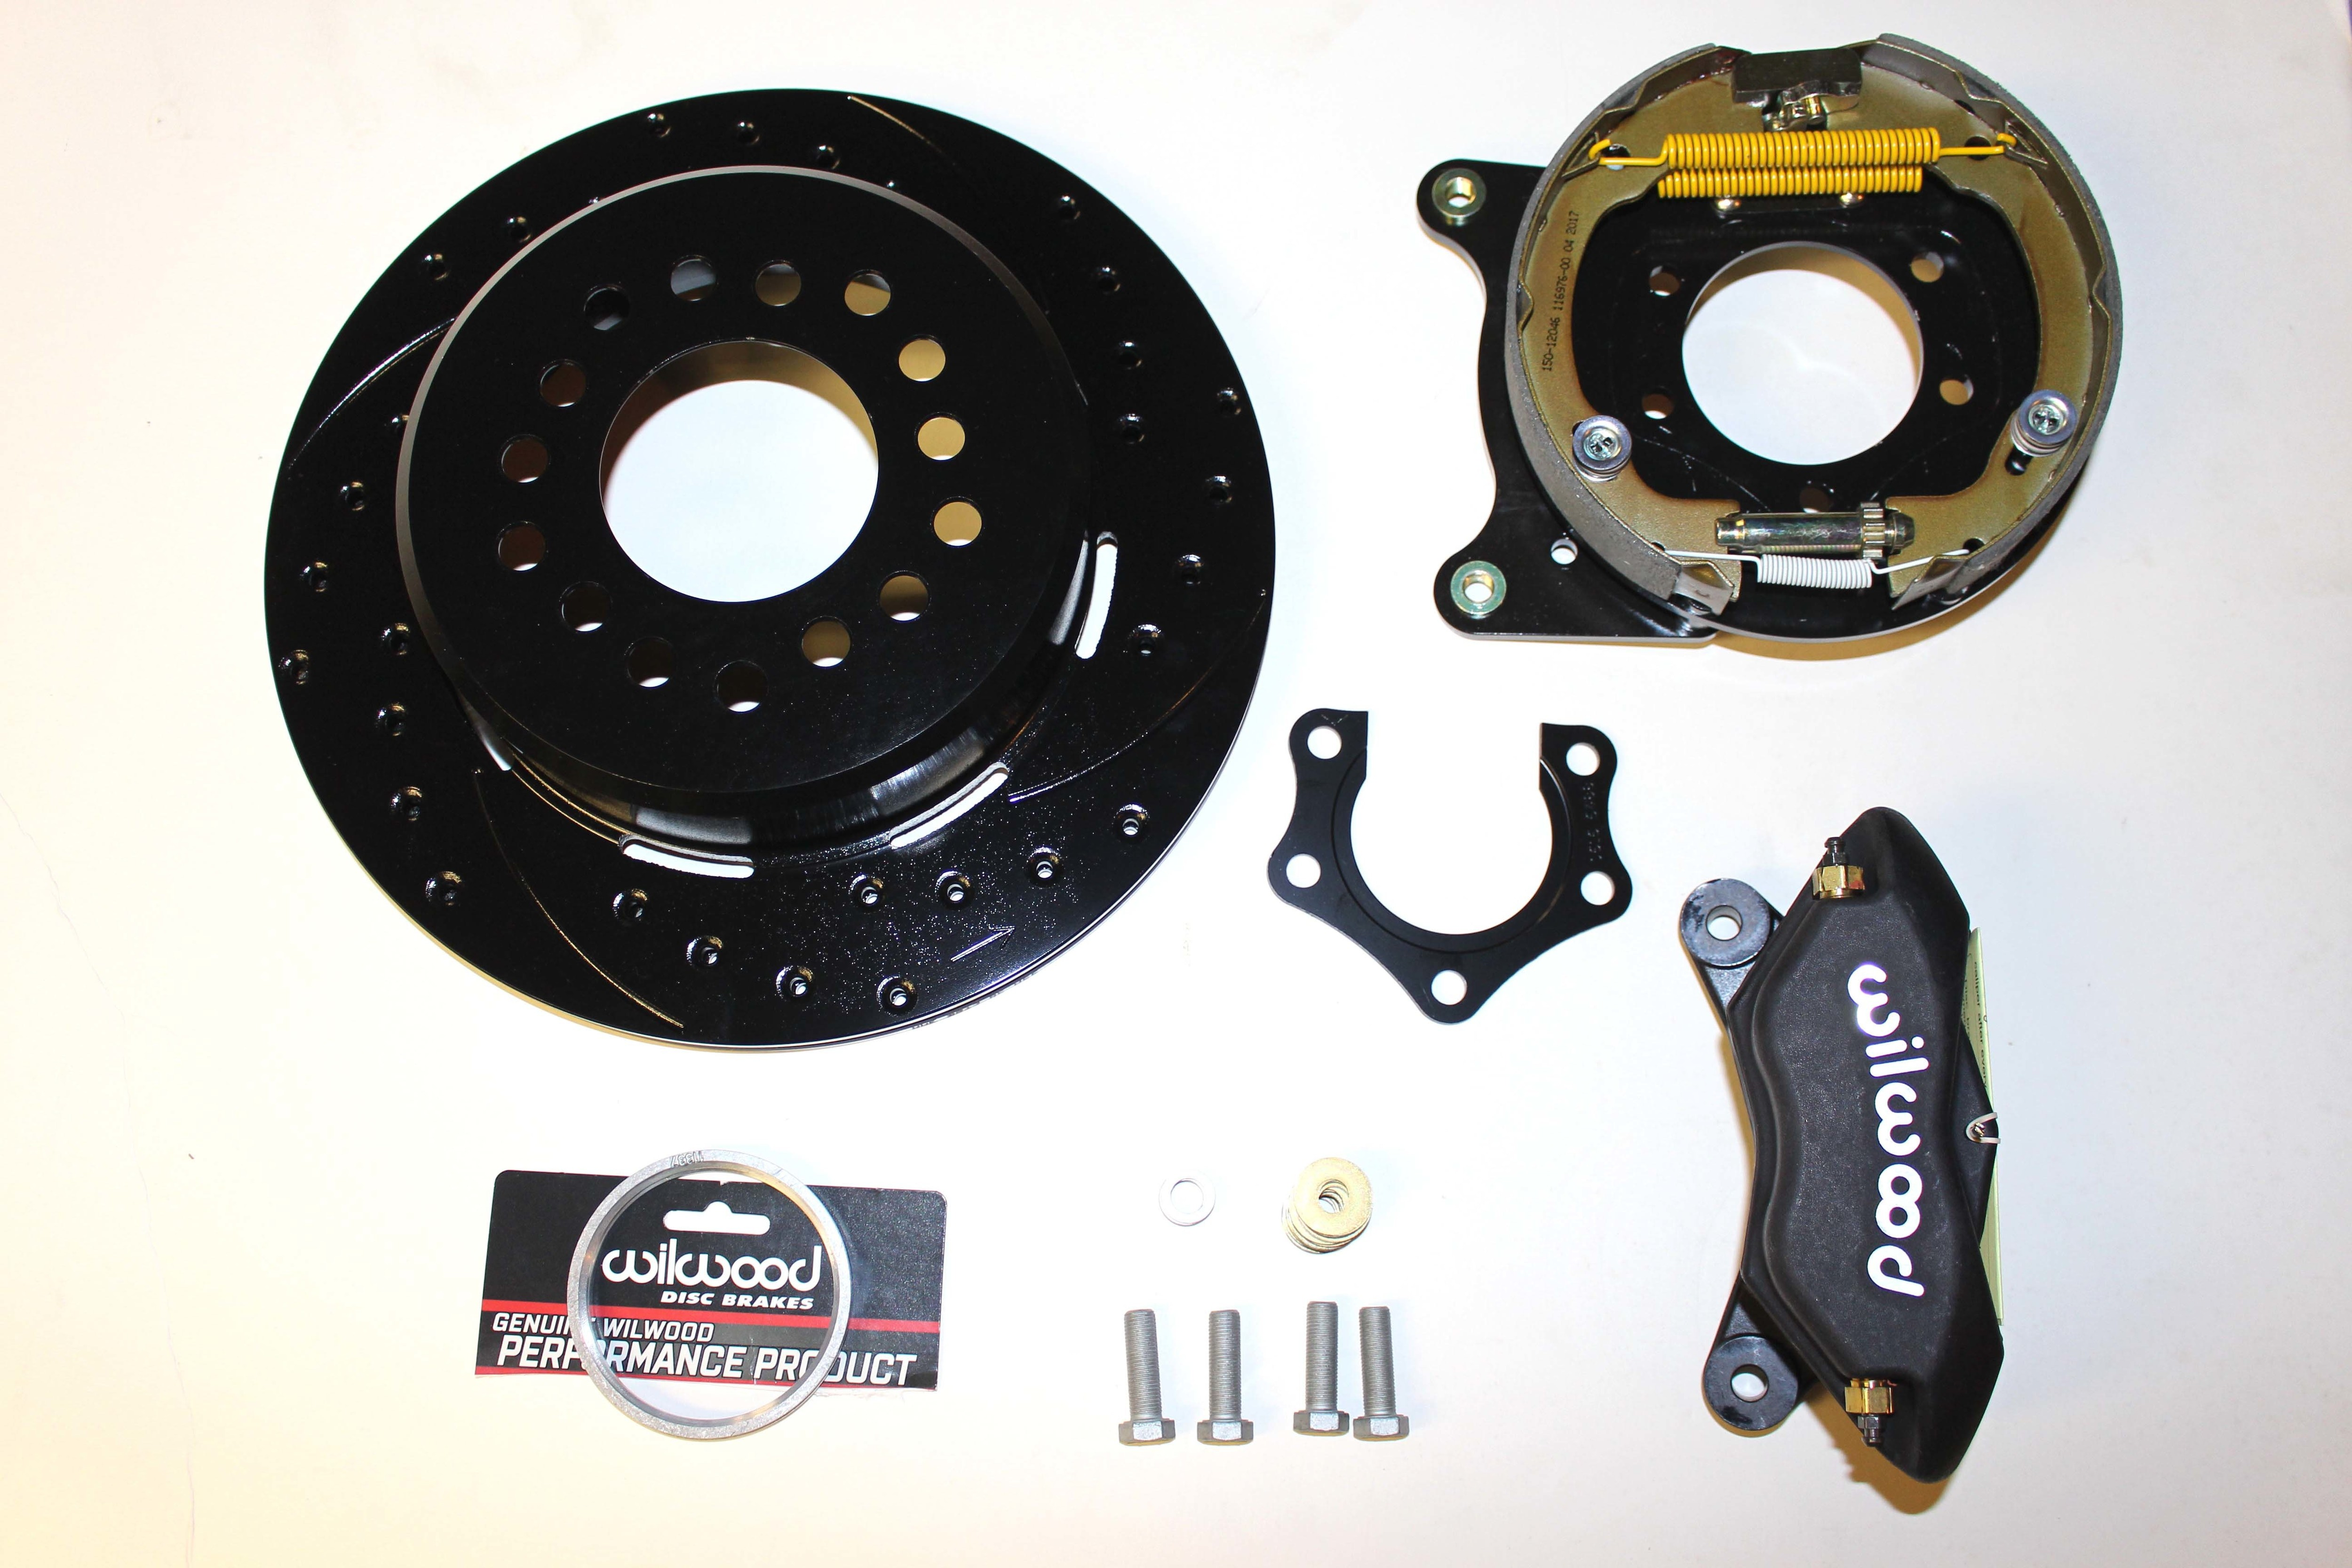 Disc Brake Schematic Diagram New 12 Inch Wilwood Discs Let You Keep Your 15 Inch Wheels Hot Of Disc Brake Schematic Diagram